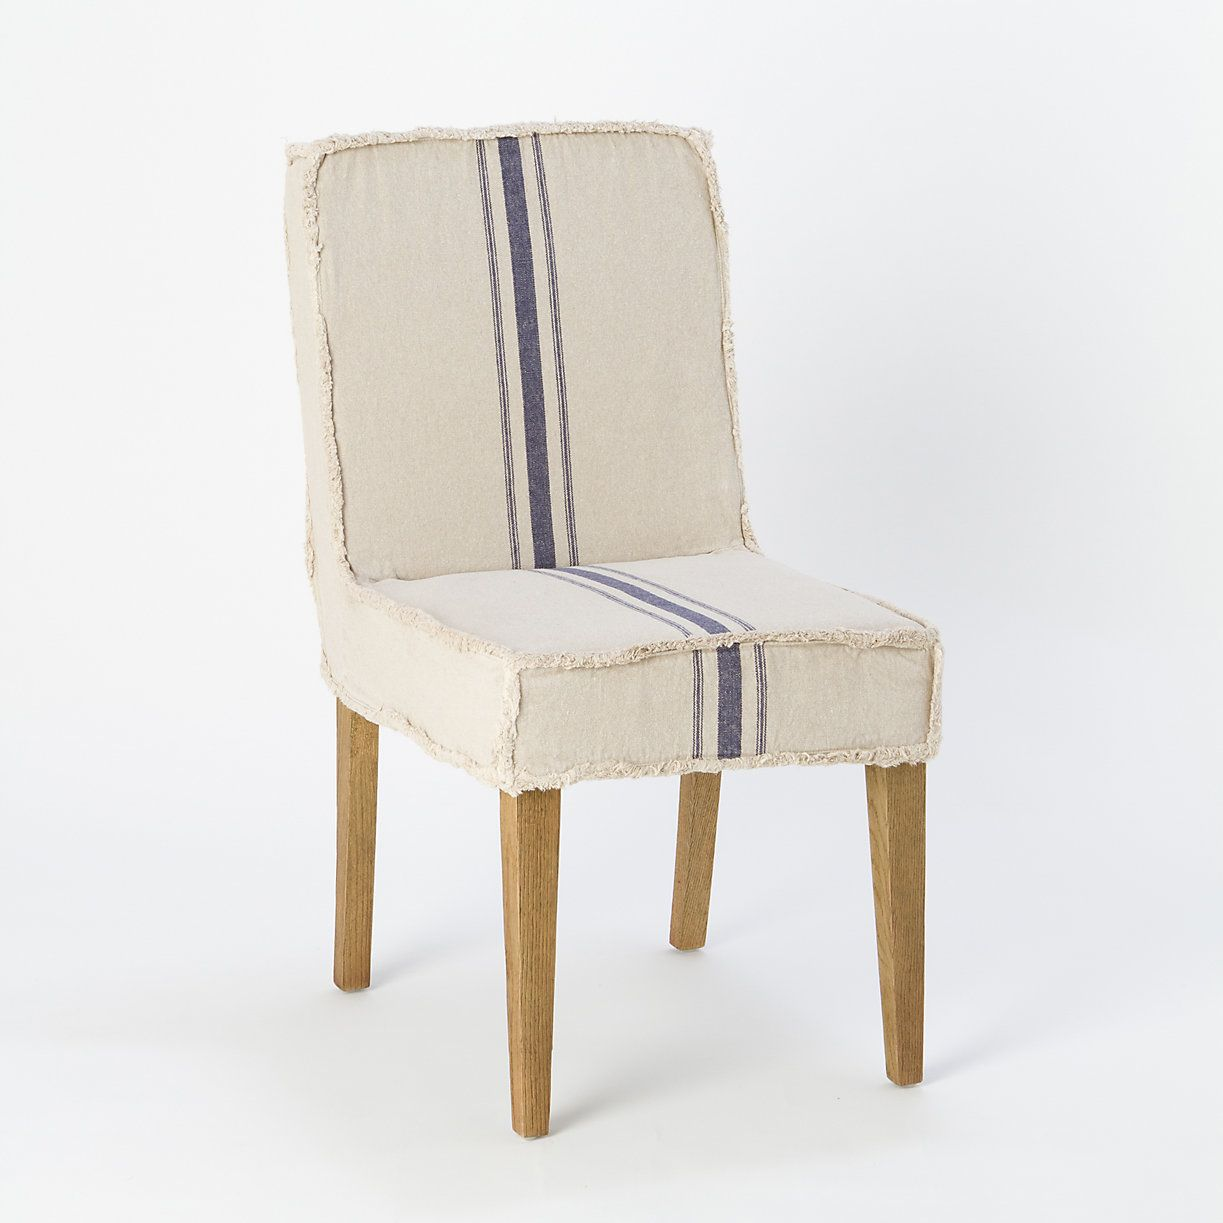 Explore Upholstered Dining Chairs Cafe Chairore